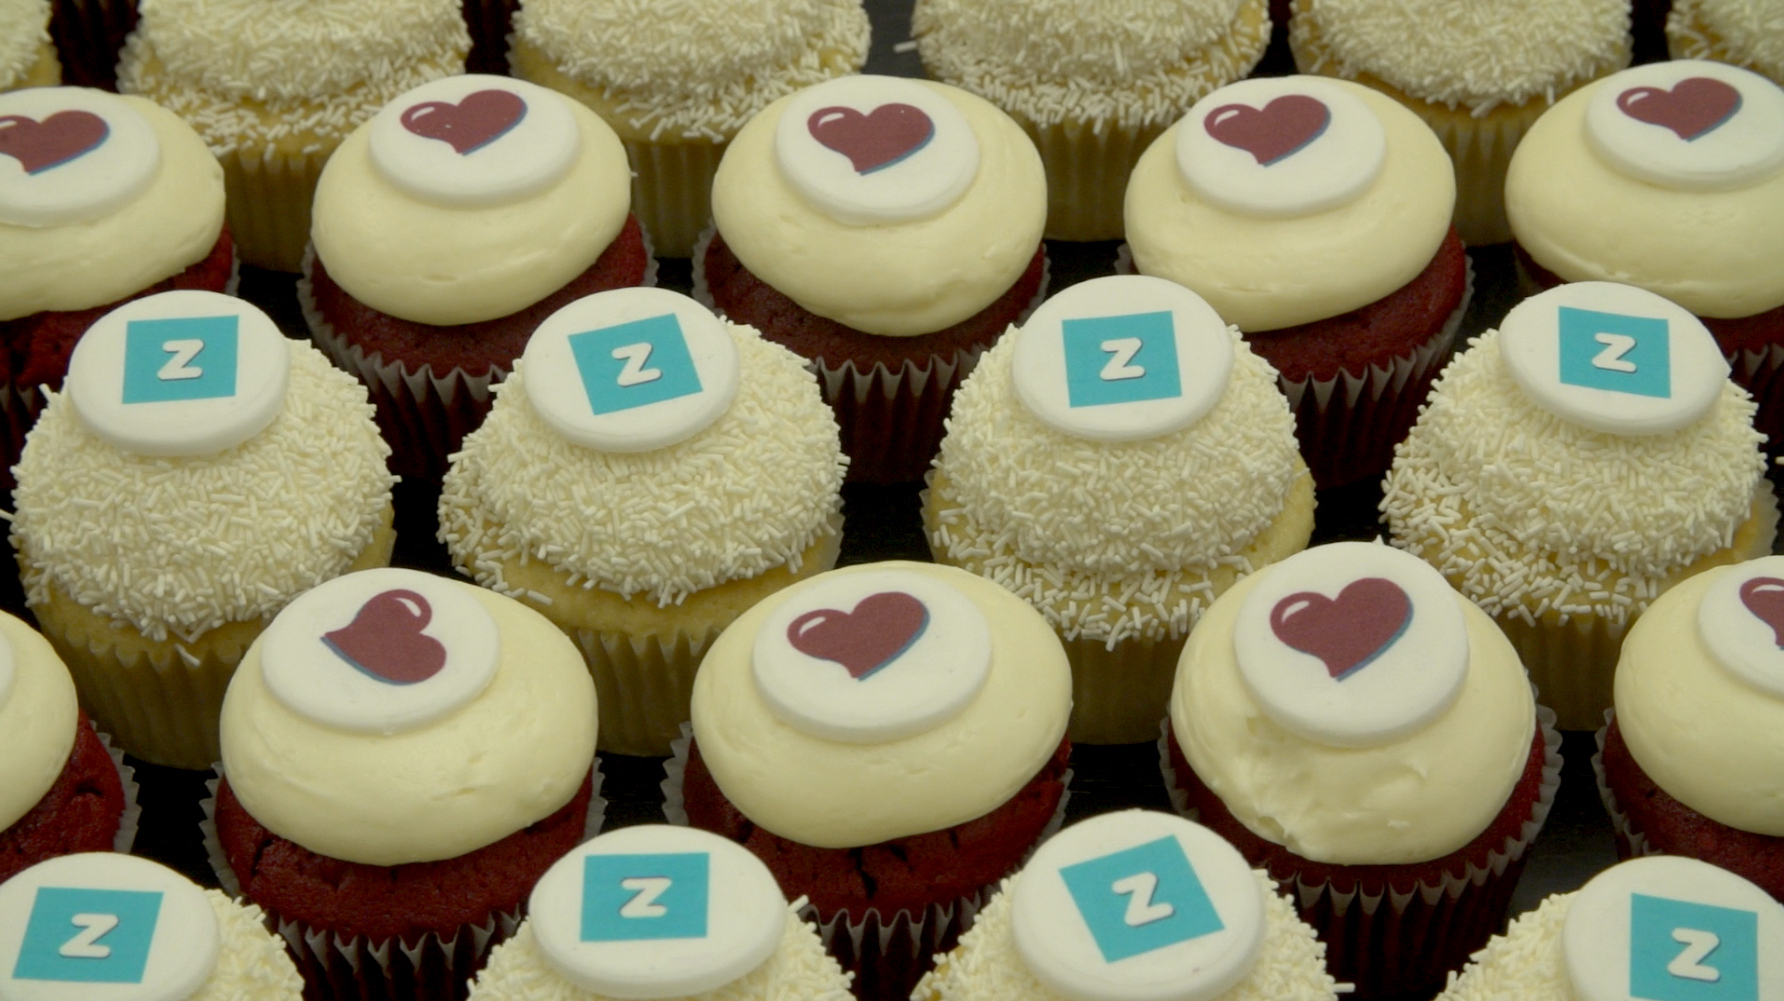 Zoosk HQ Has A Lot Of Heart (And Puppies) | TC Cribs